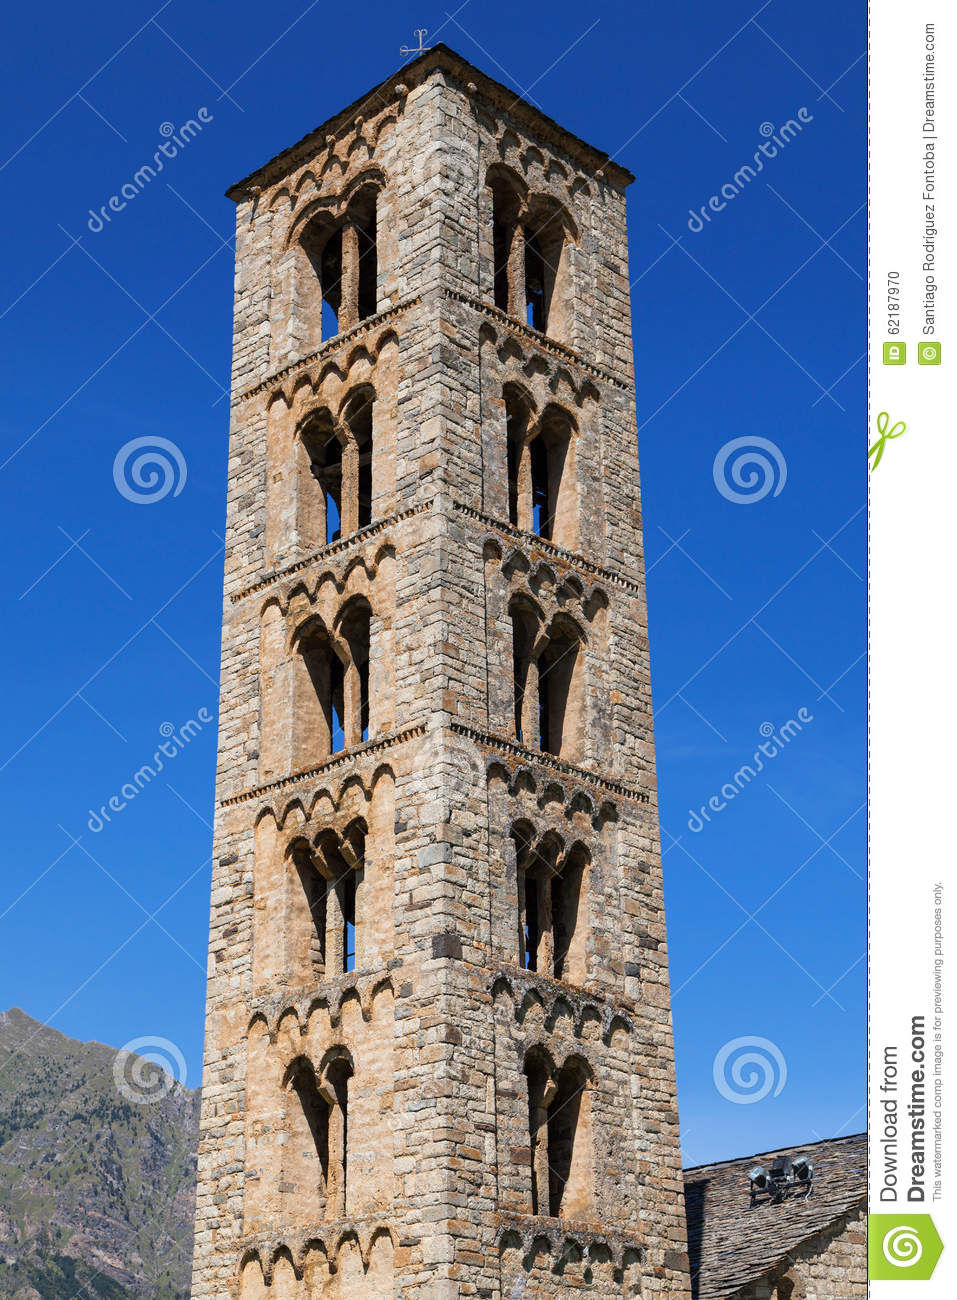 Sant Climent Bell Tower In Taull Stock Photo - Image: 62187970